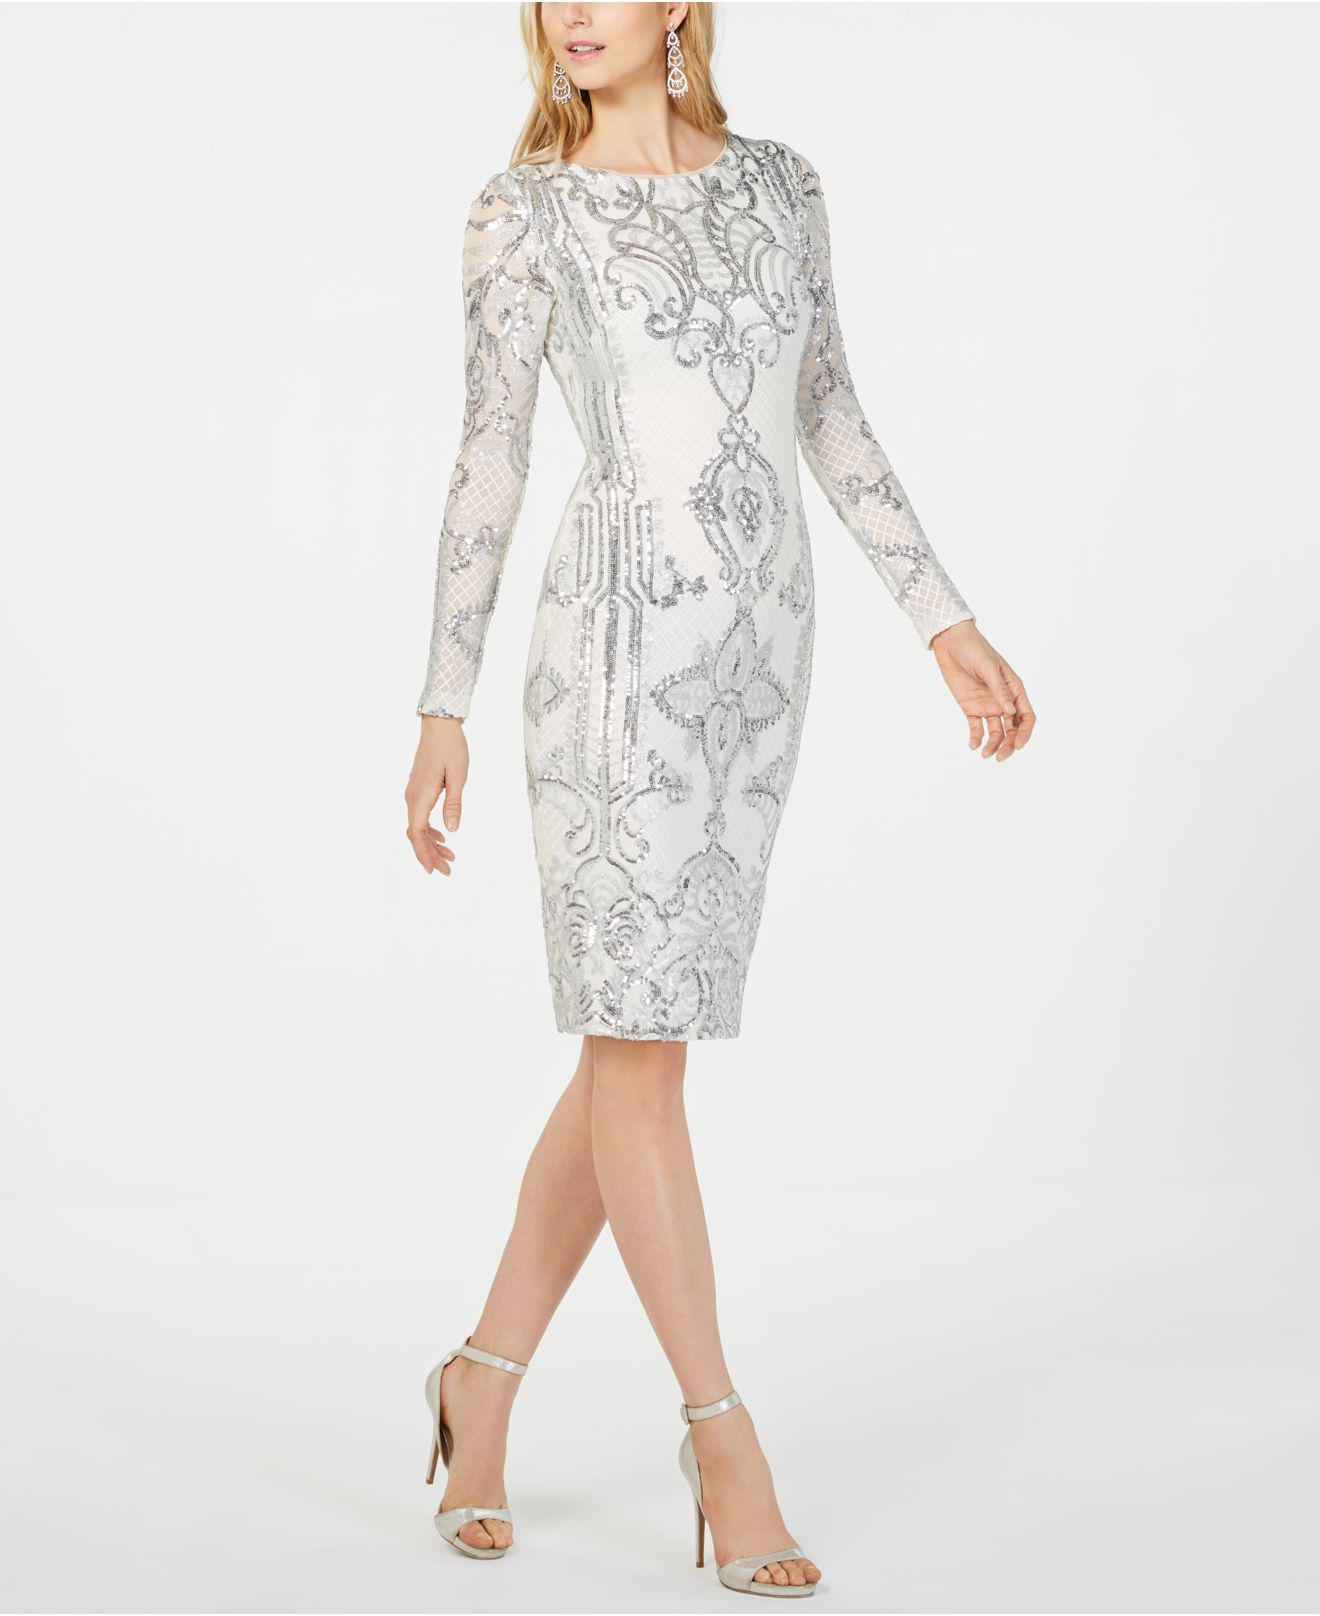 1635a496c680 Betsy & Adam Petite Embroidered Sheath Dress in White - Lyst